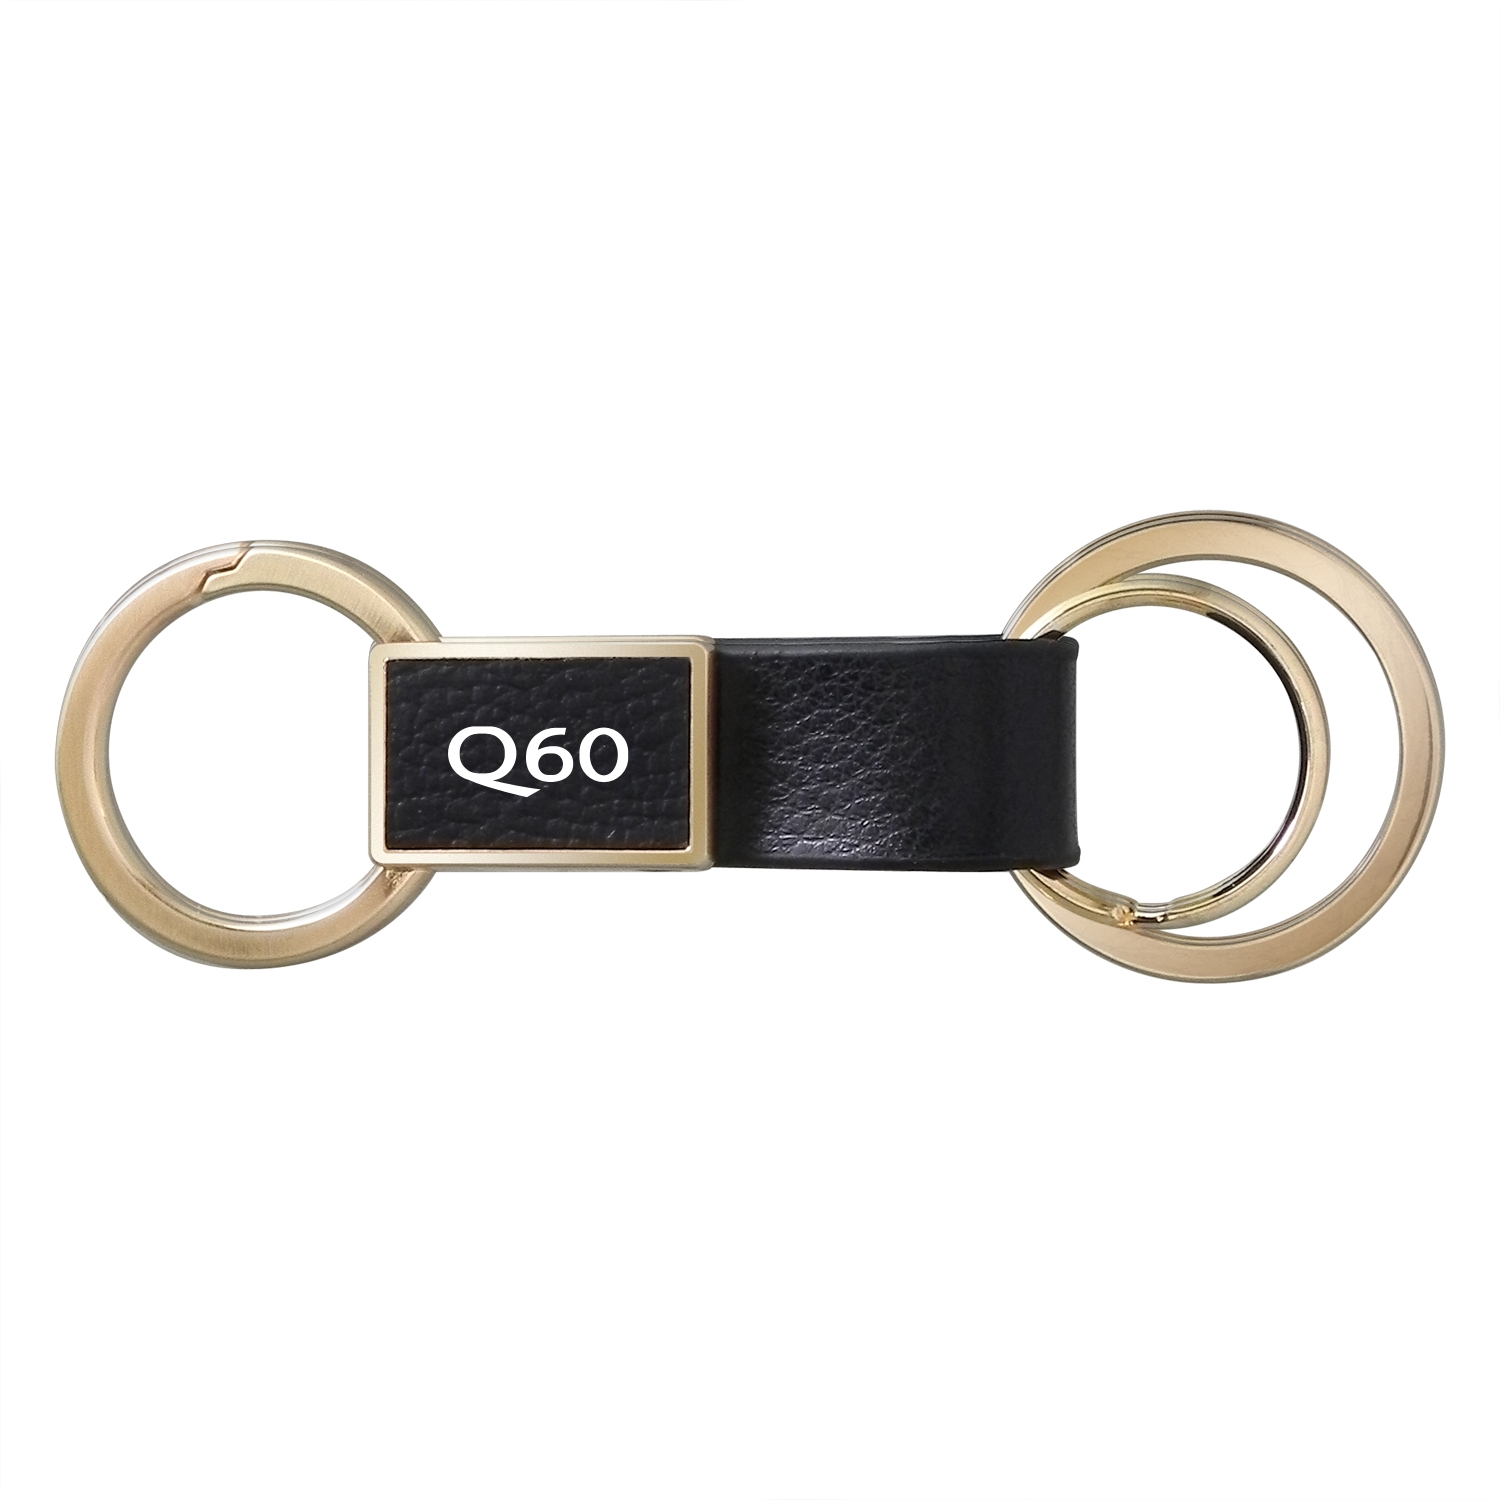 Infiniti Q60 Round Hook Leather Strip Double Ring Golden Metal Key Chain